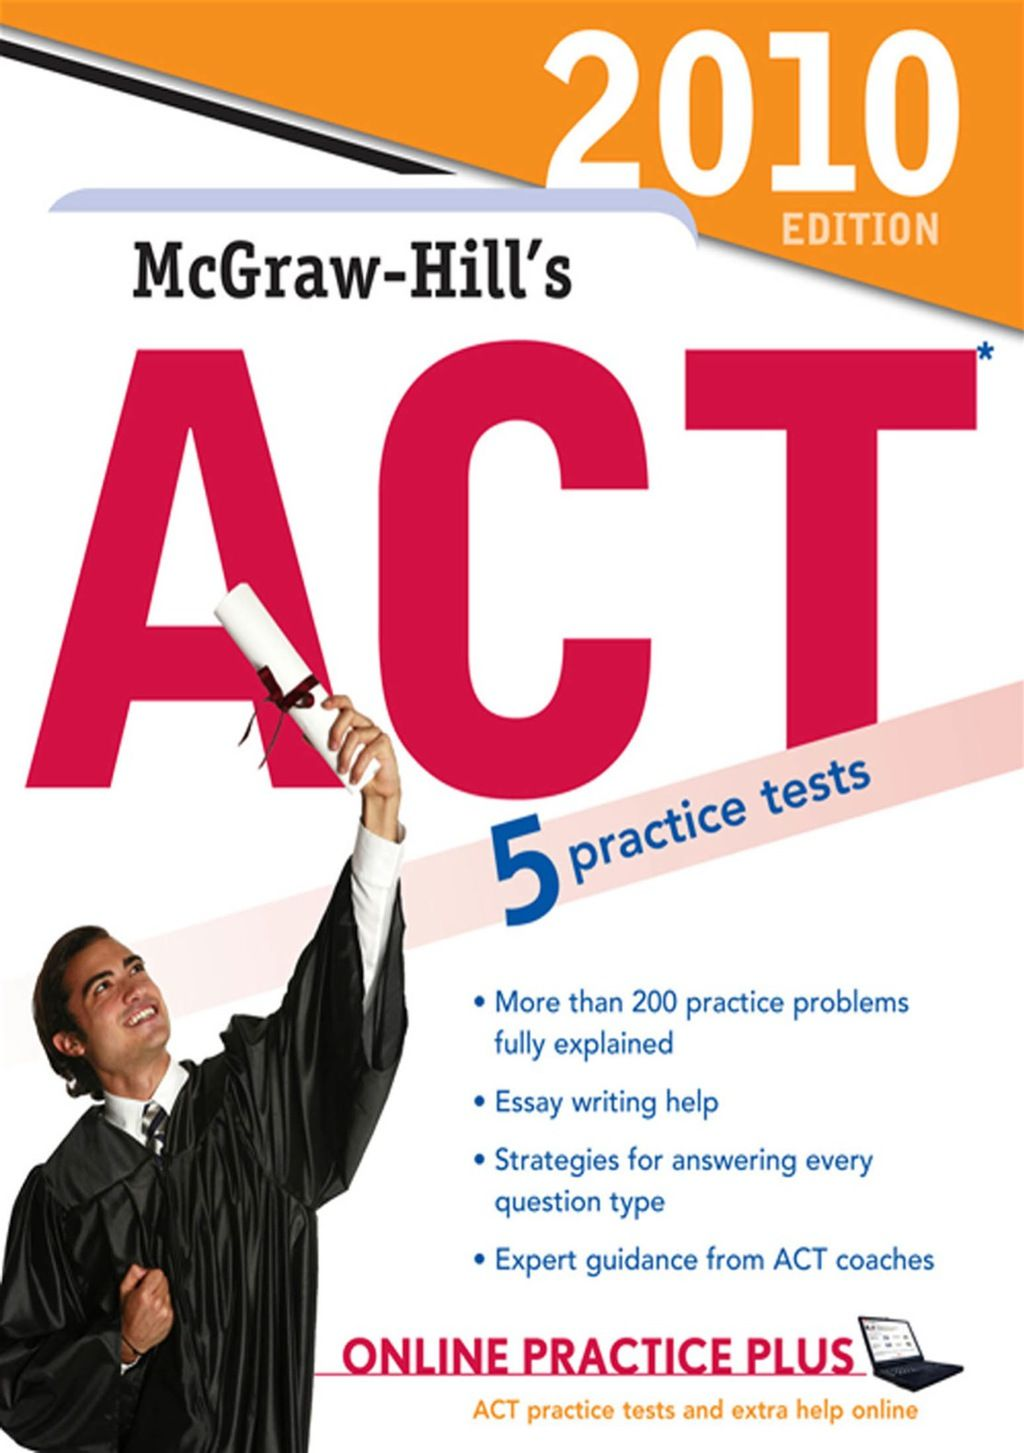 McGrawHill's ACT 2010 Edition (eBook) Essay writing